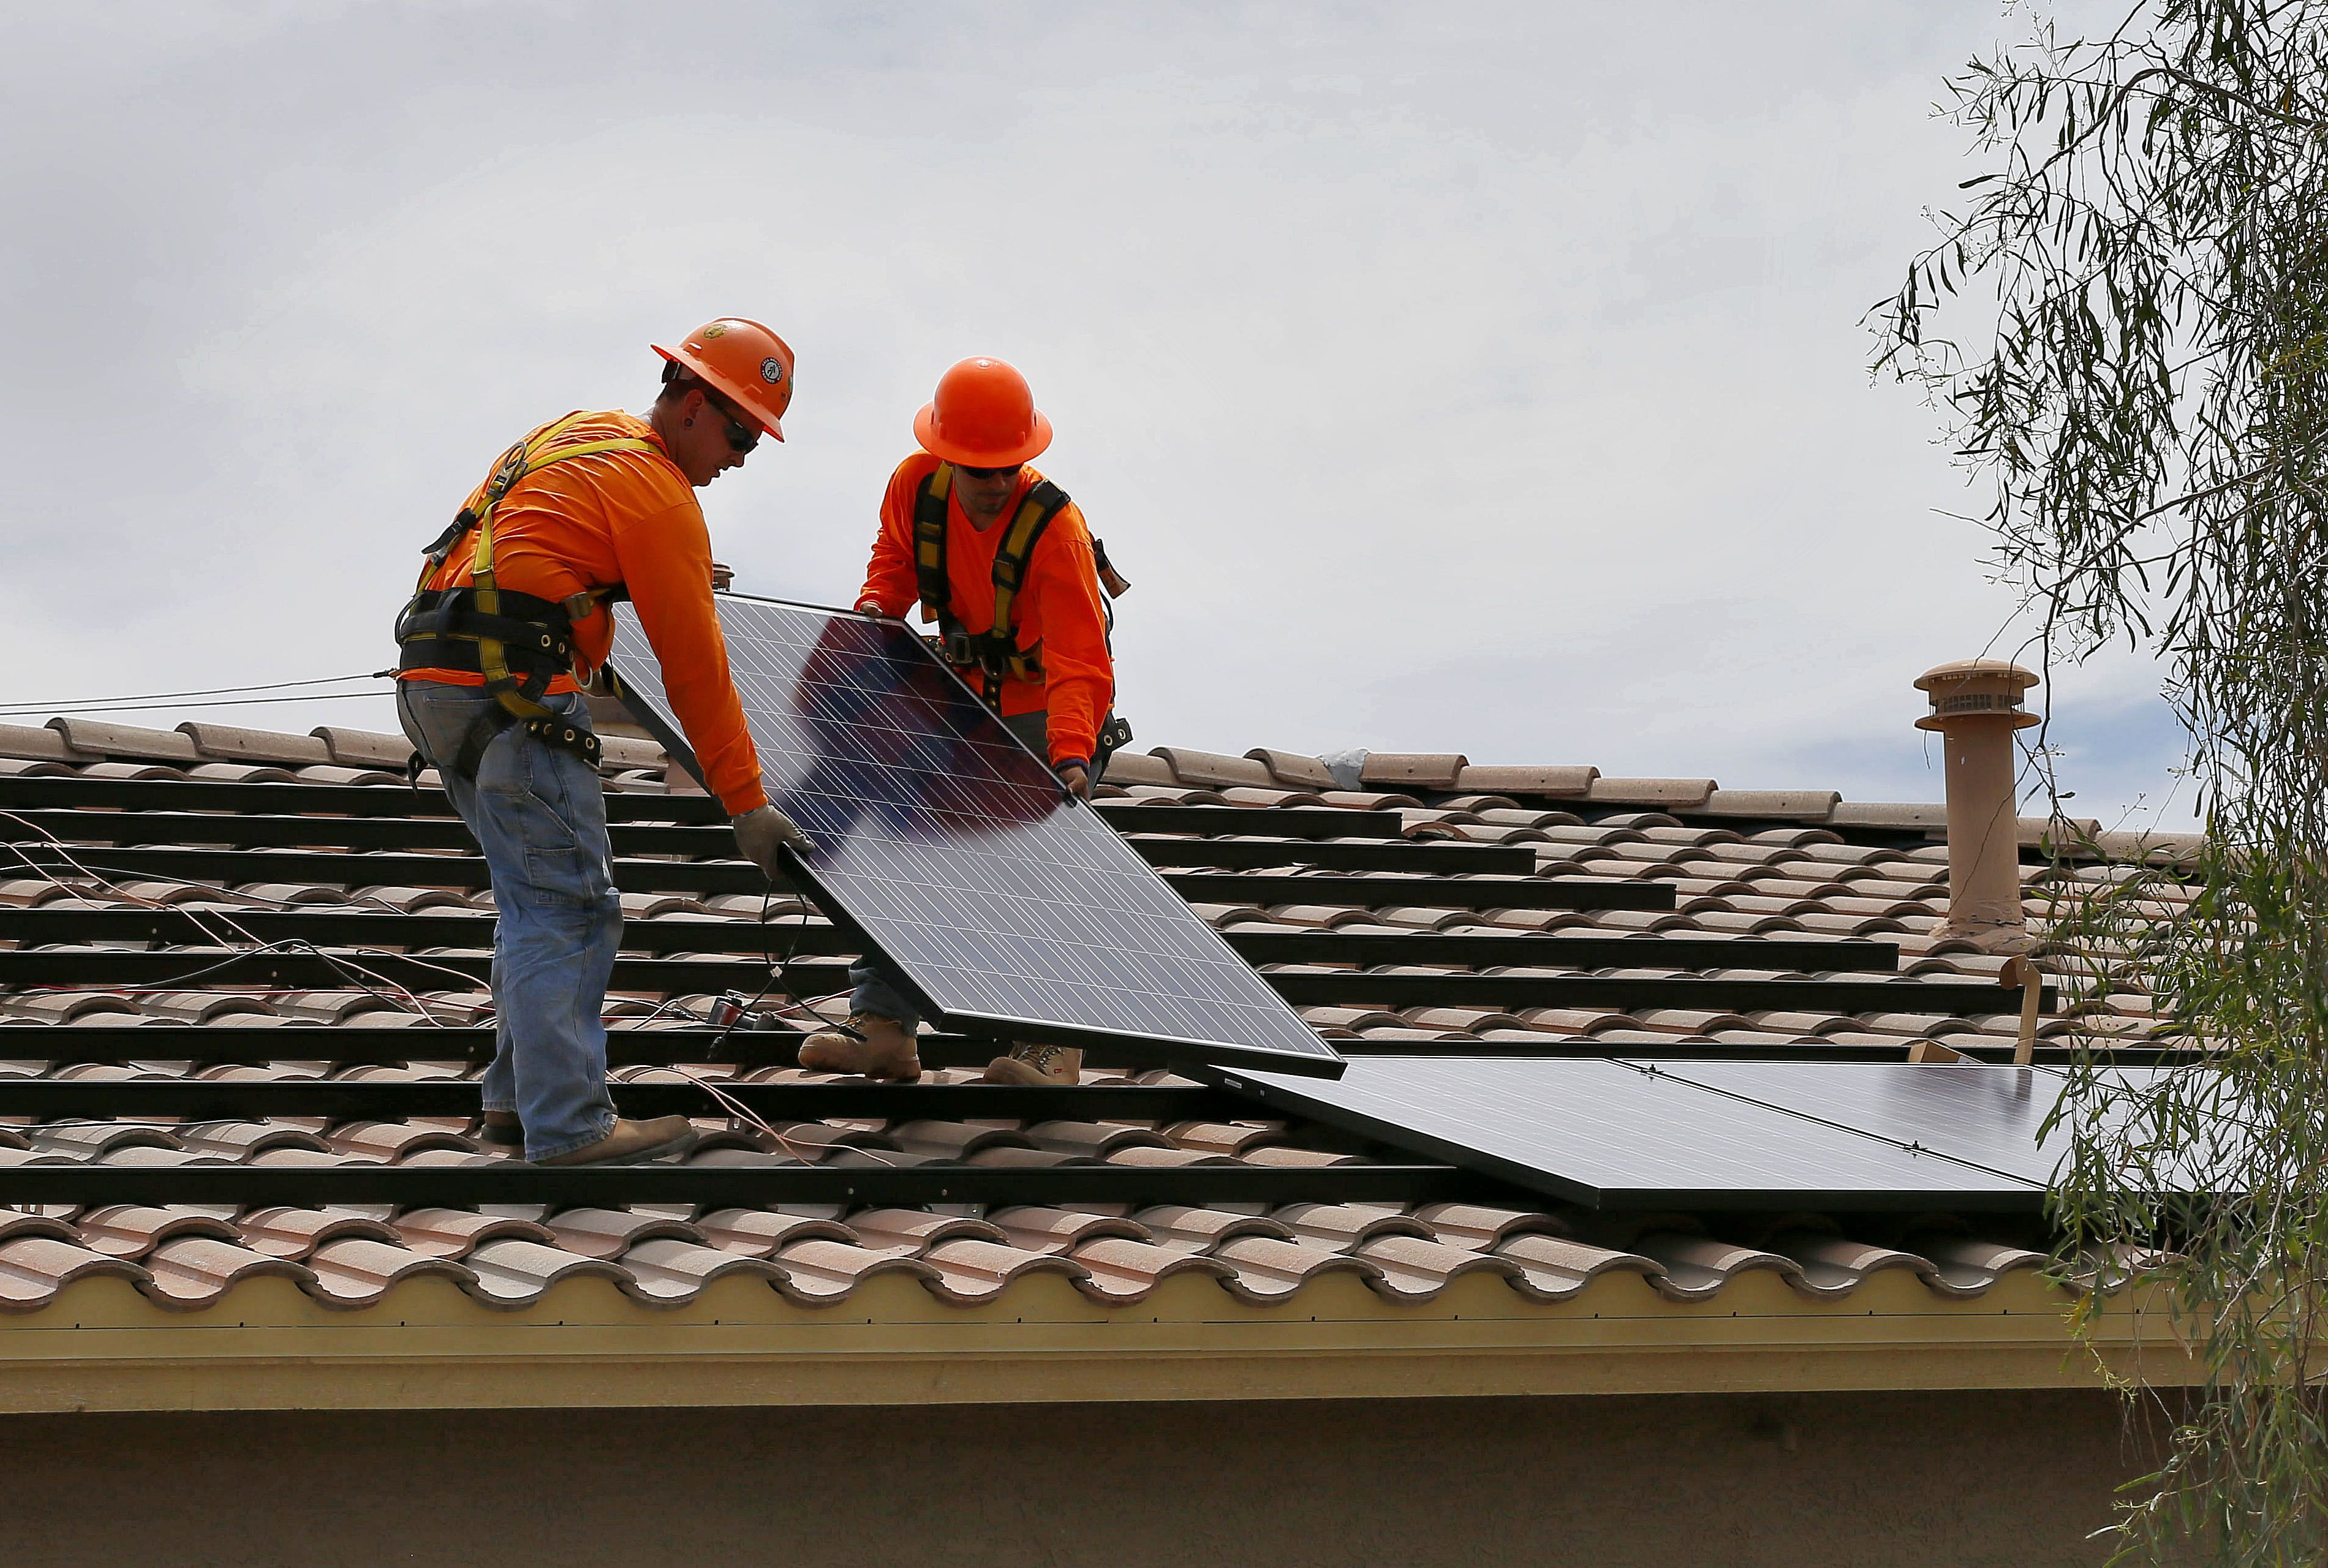 electricians Adam Hall, right, and Steven Gabert, install solar panels on a roof for Arizona Public Service company in Goodyear, Ariz.